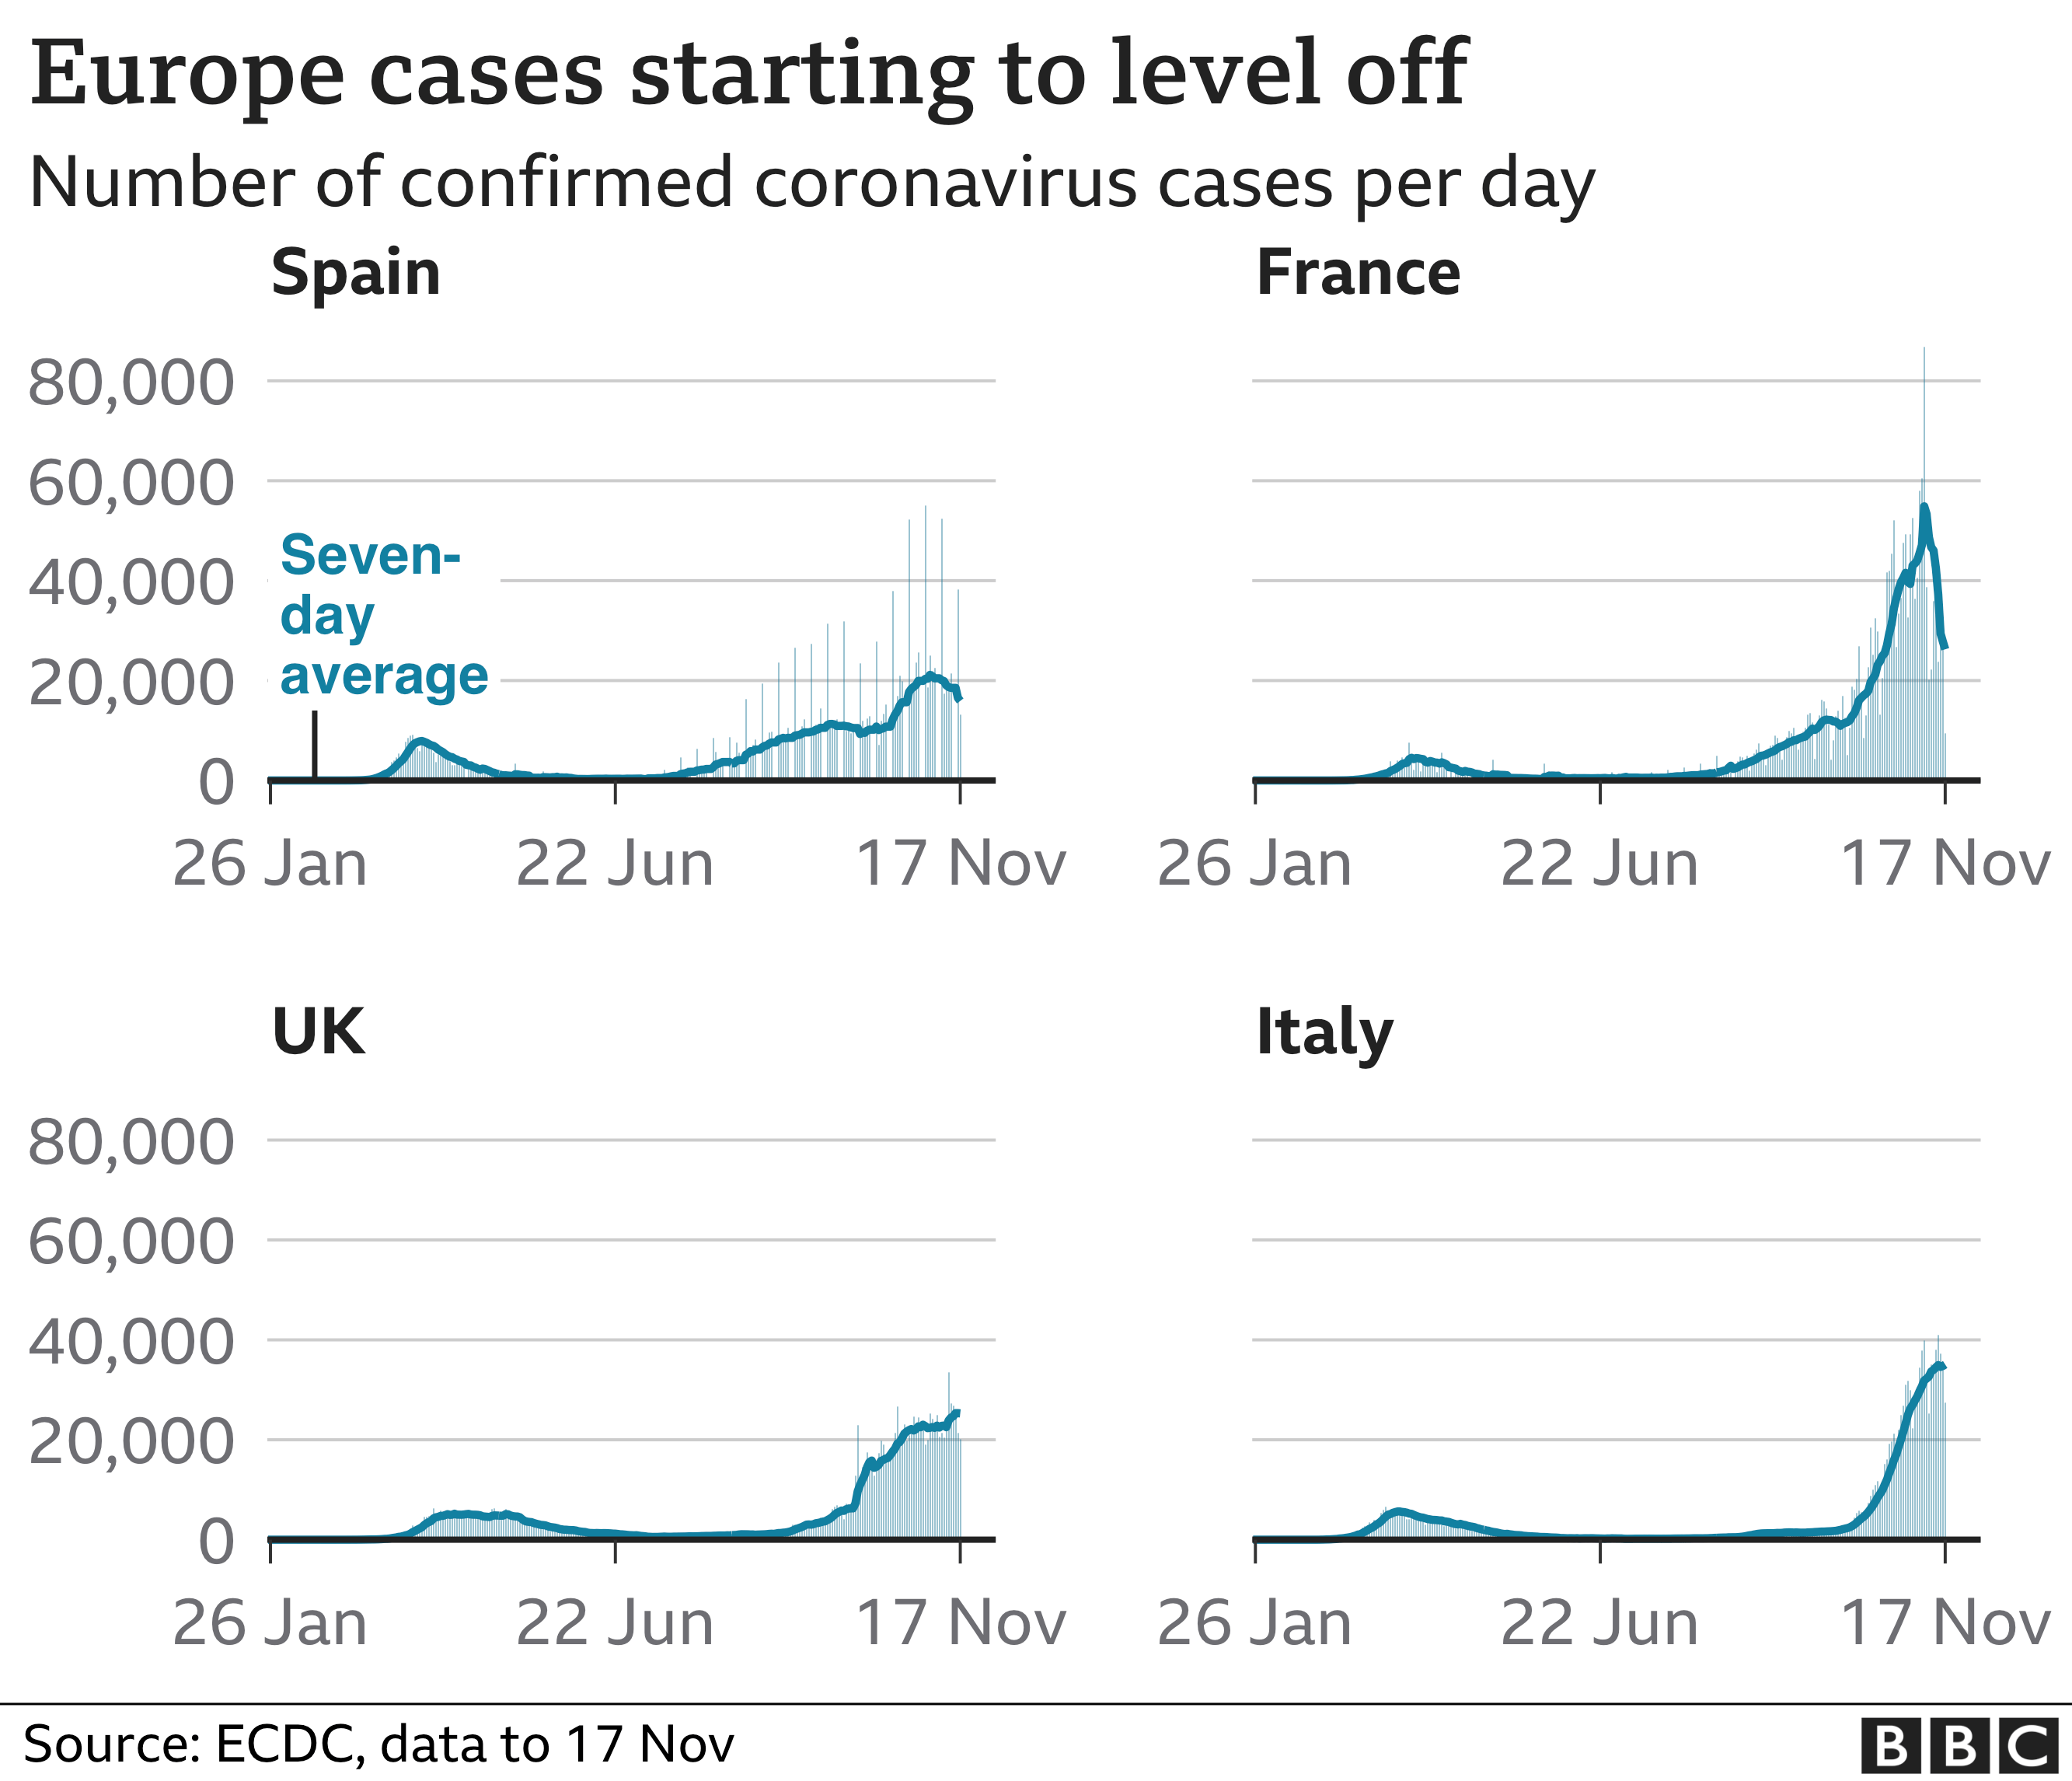 Chart shows second rise in selected European countries - Spain, France, UK and Italy